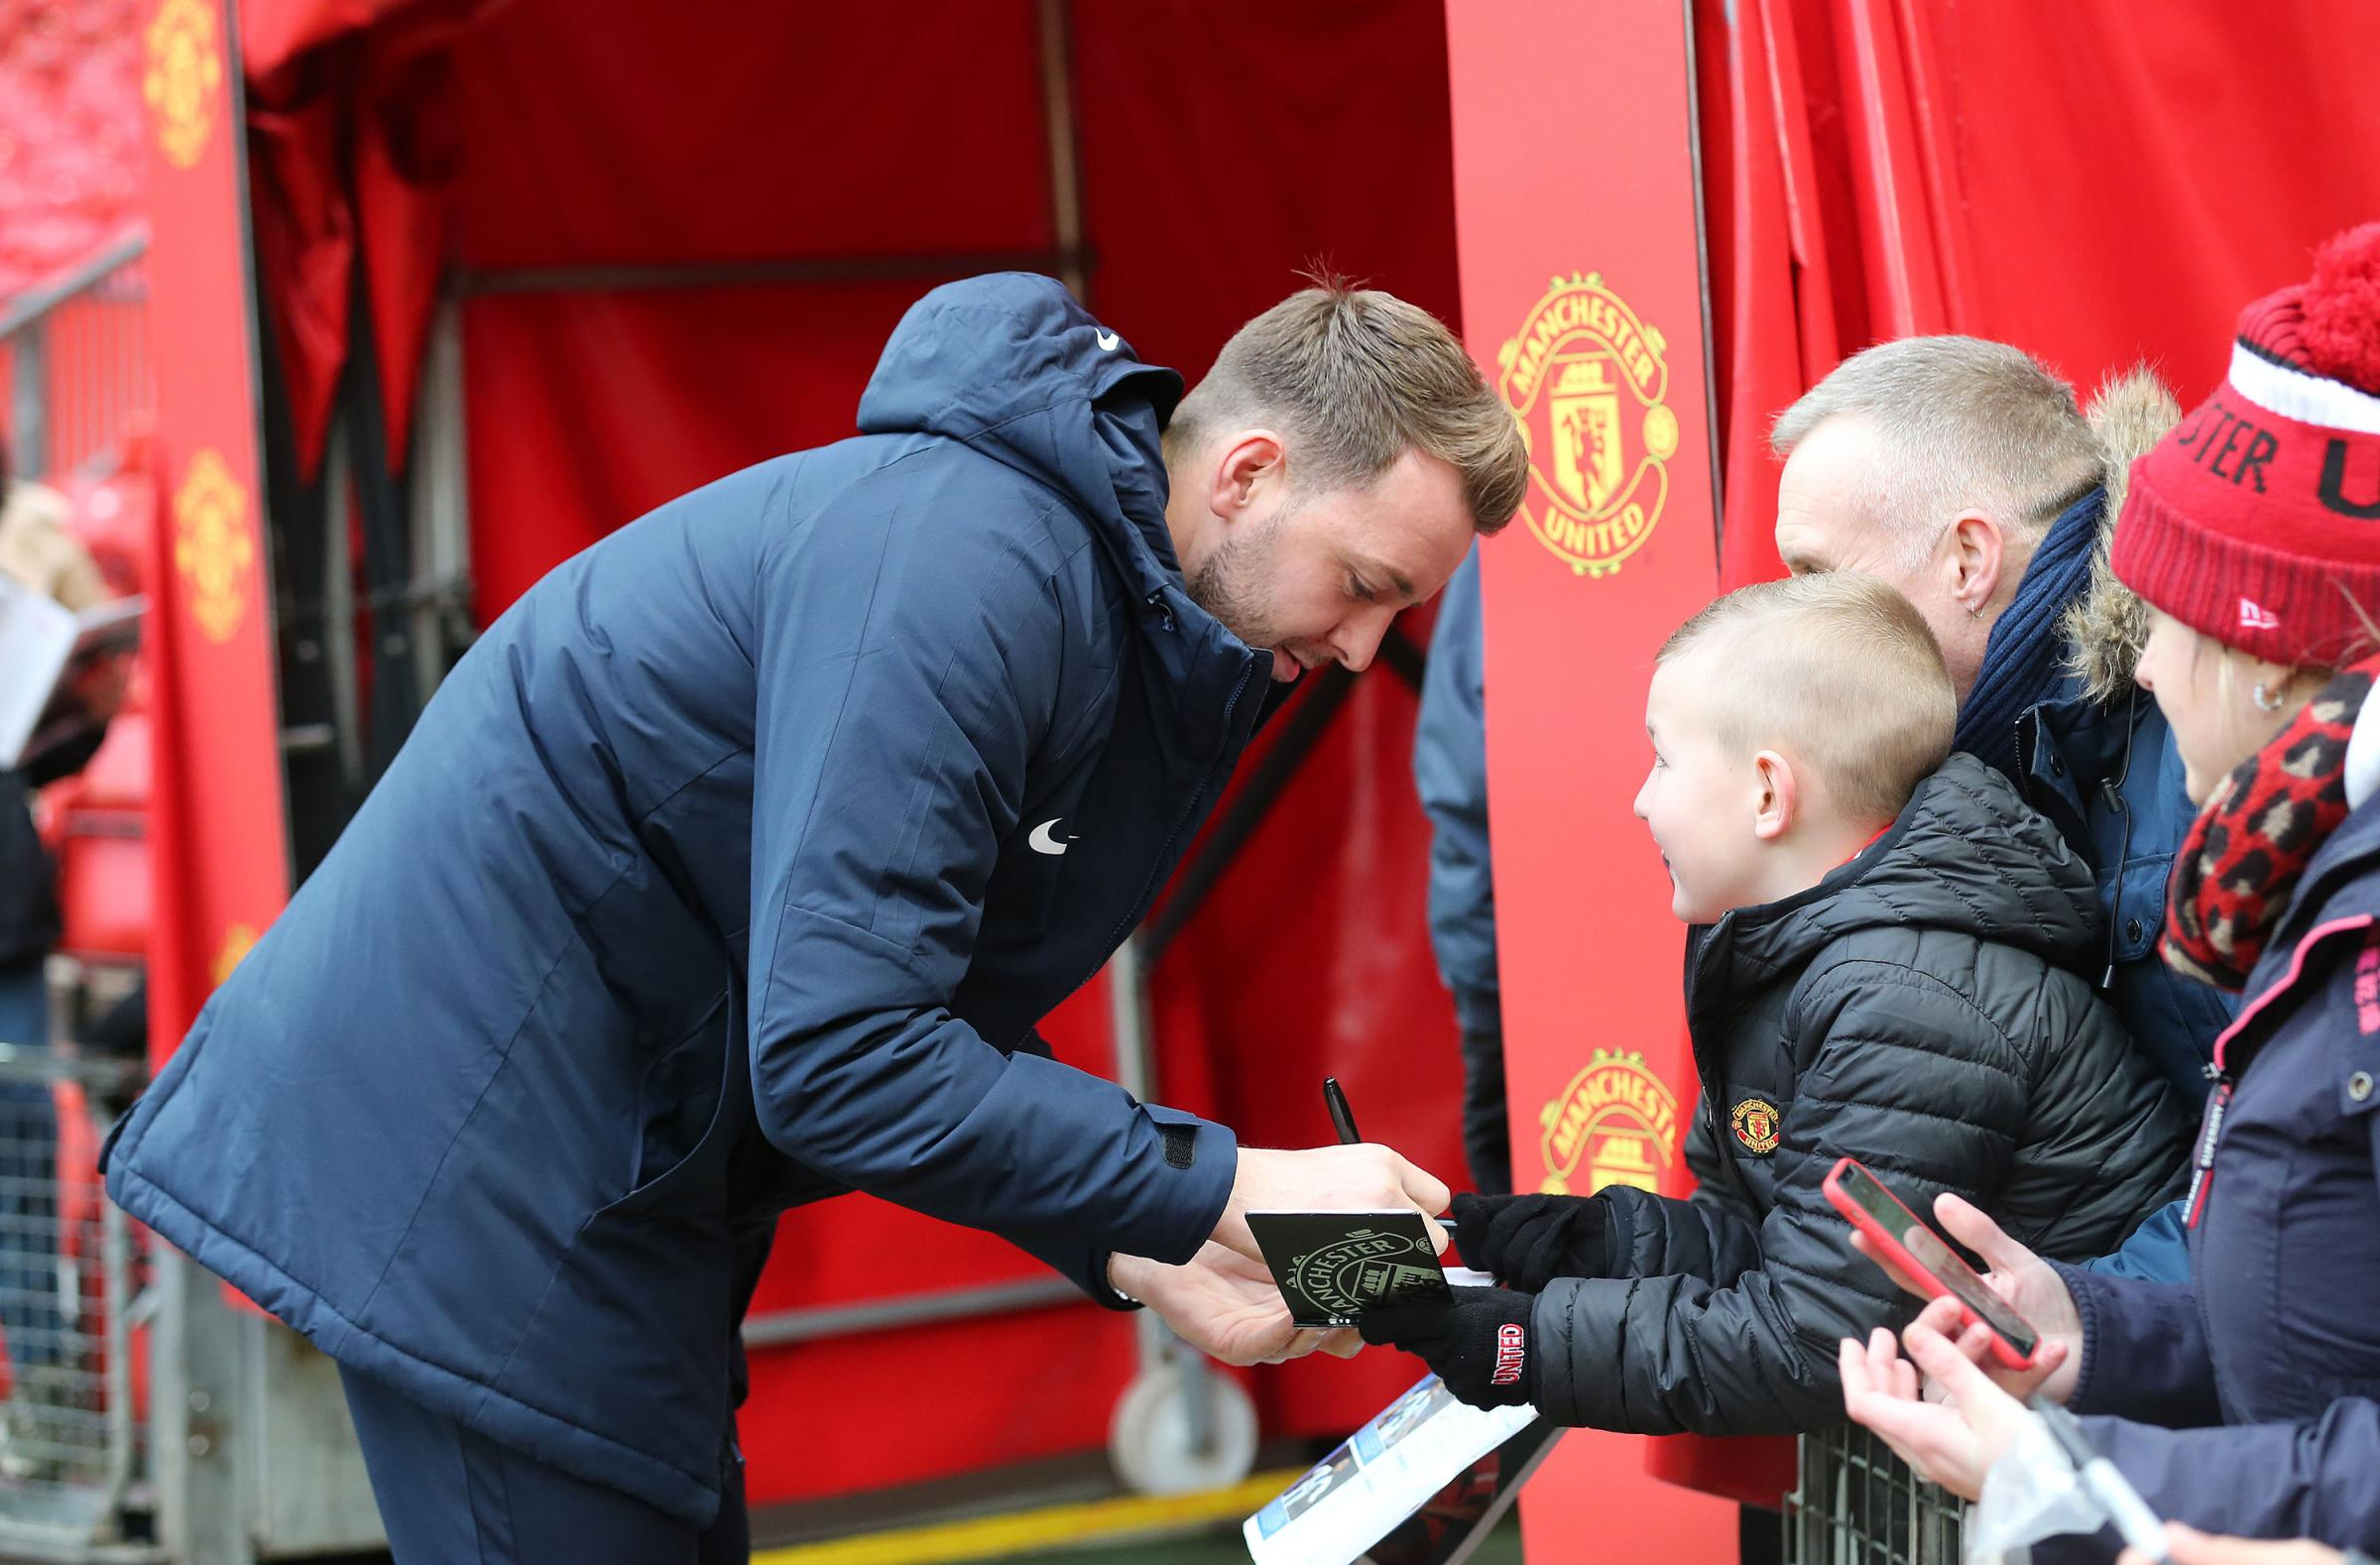 Follow the build-up to Manchester United v Albion from Old Trafford